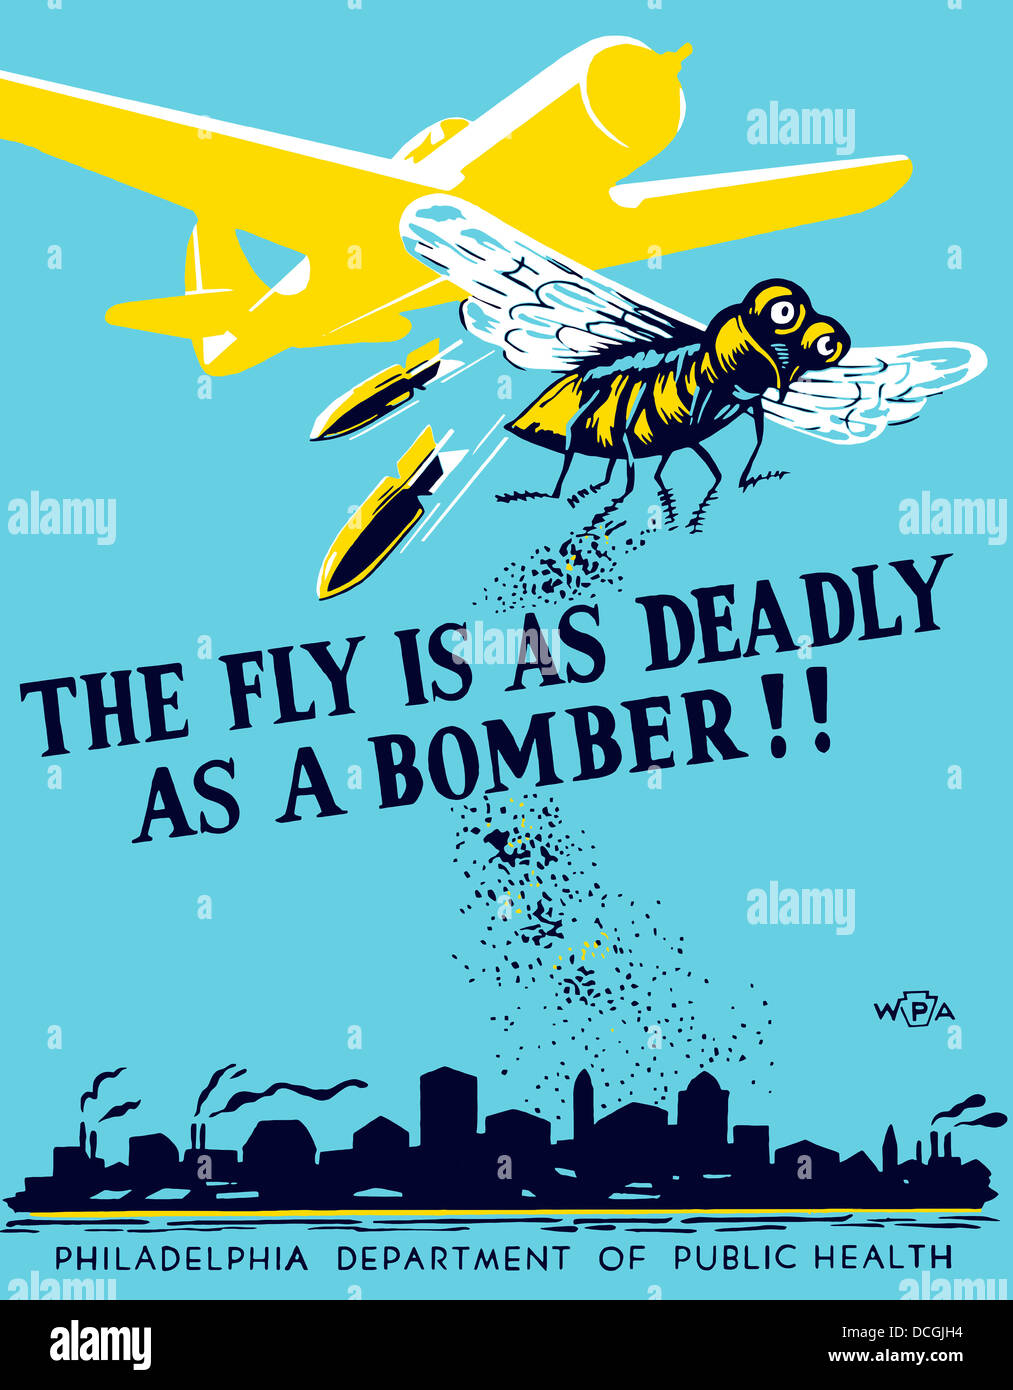 WPA propaganda poster of a bomber plane and a fly dropping germs. - Stock Image